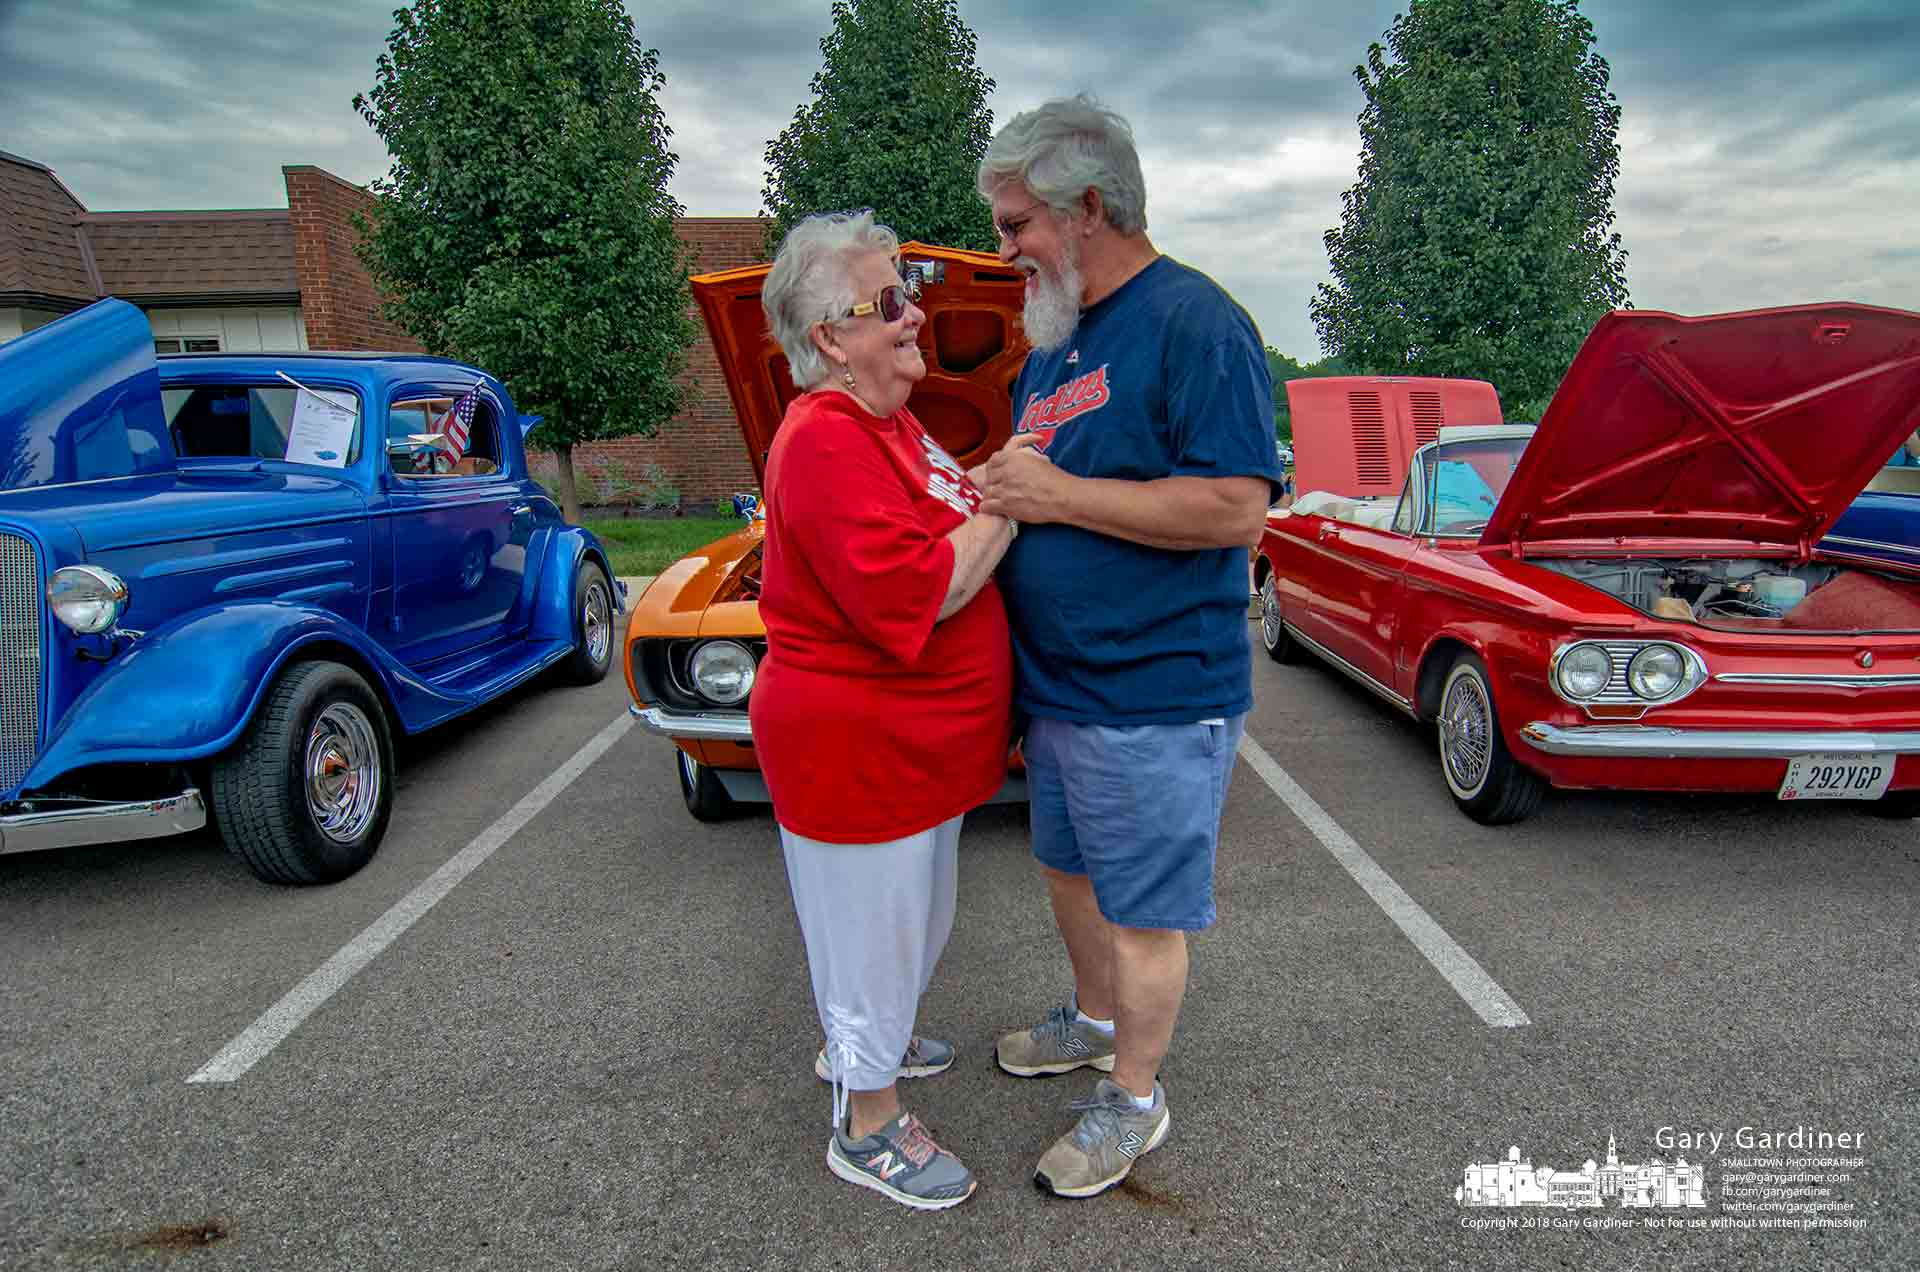 A couple slow dance to classic rock and roll at the classic car show at the Blendon Township Heritage Day celebration. My Final Photo for Aug. 25, 2018.